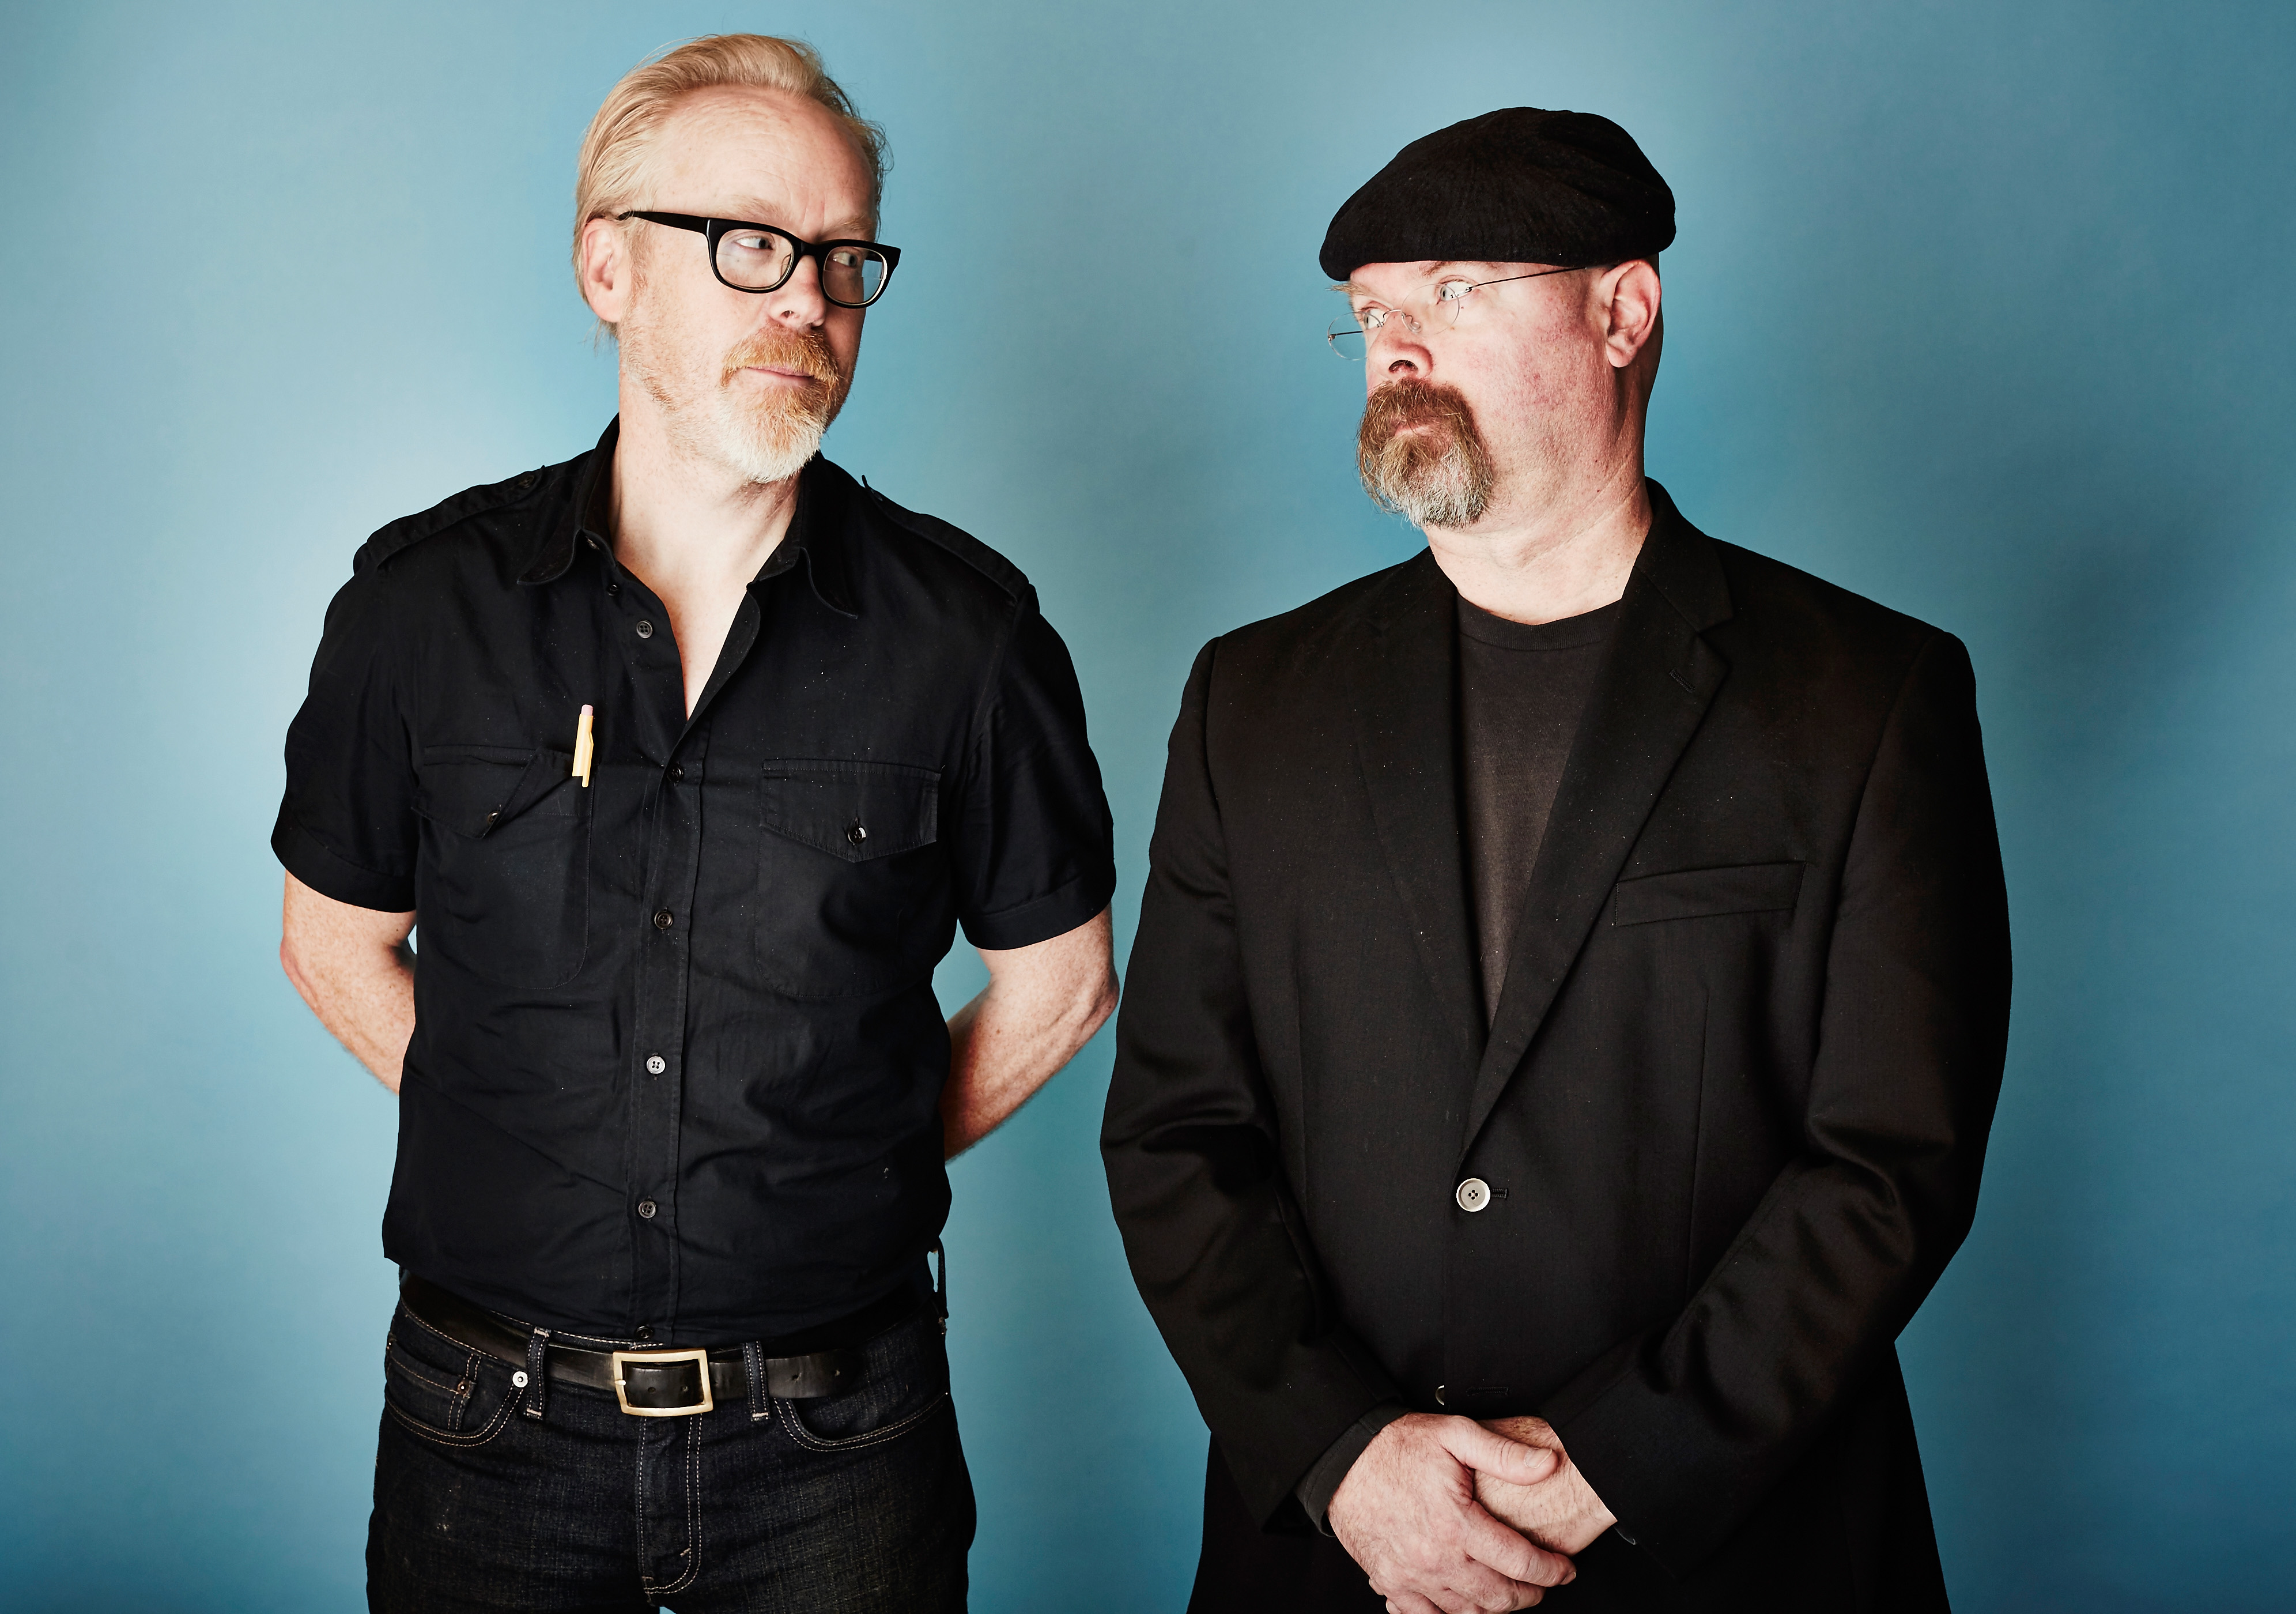 Adam Savage and Jamie Hyneman from 'MythBusters' on Jan. 8, 2015.